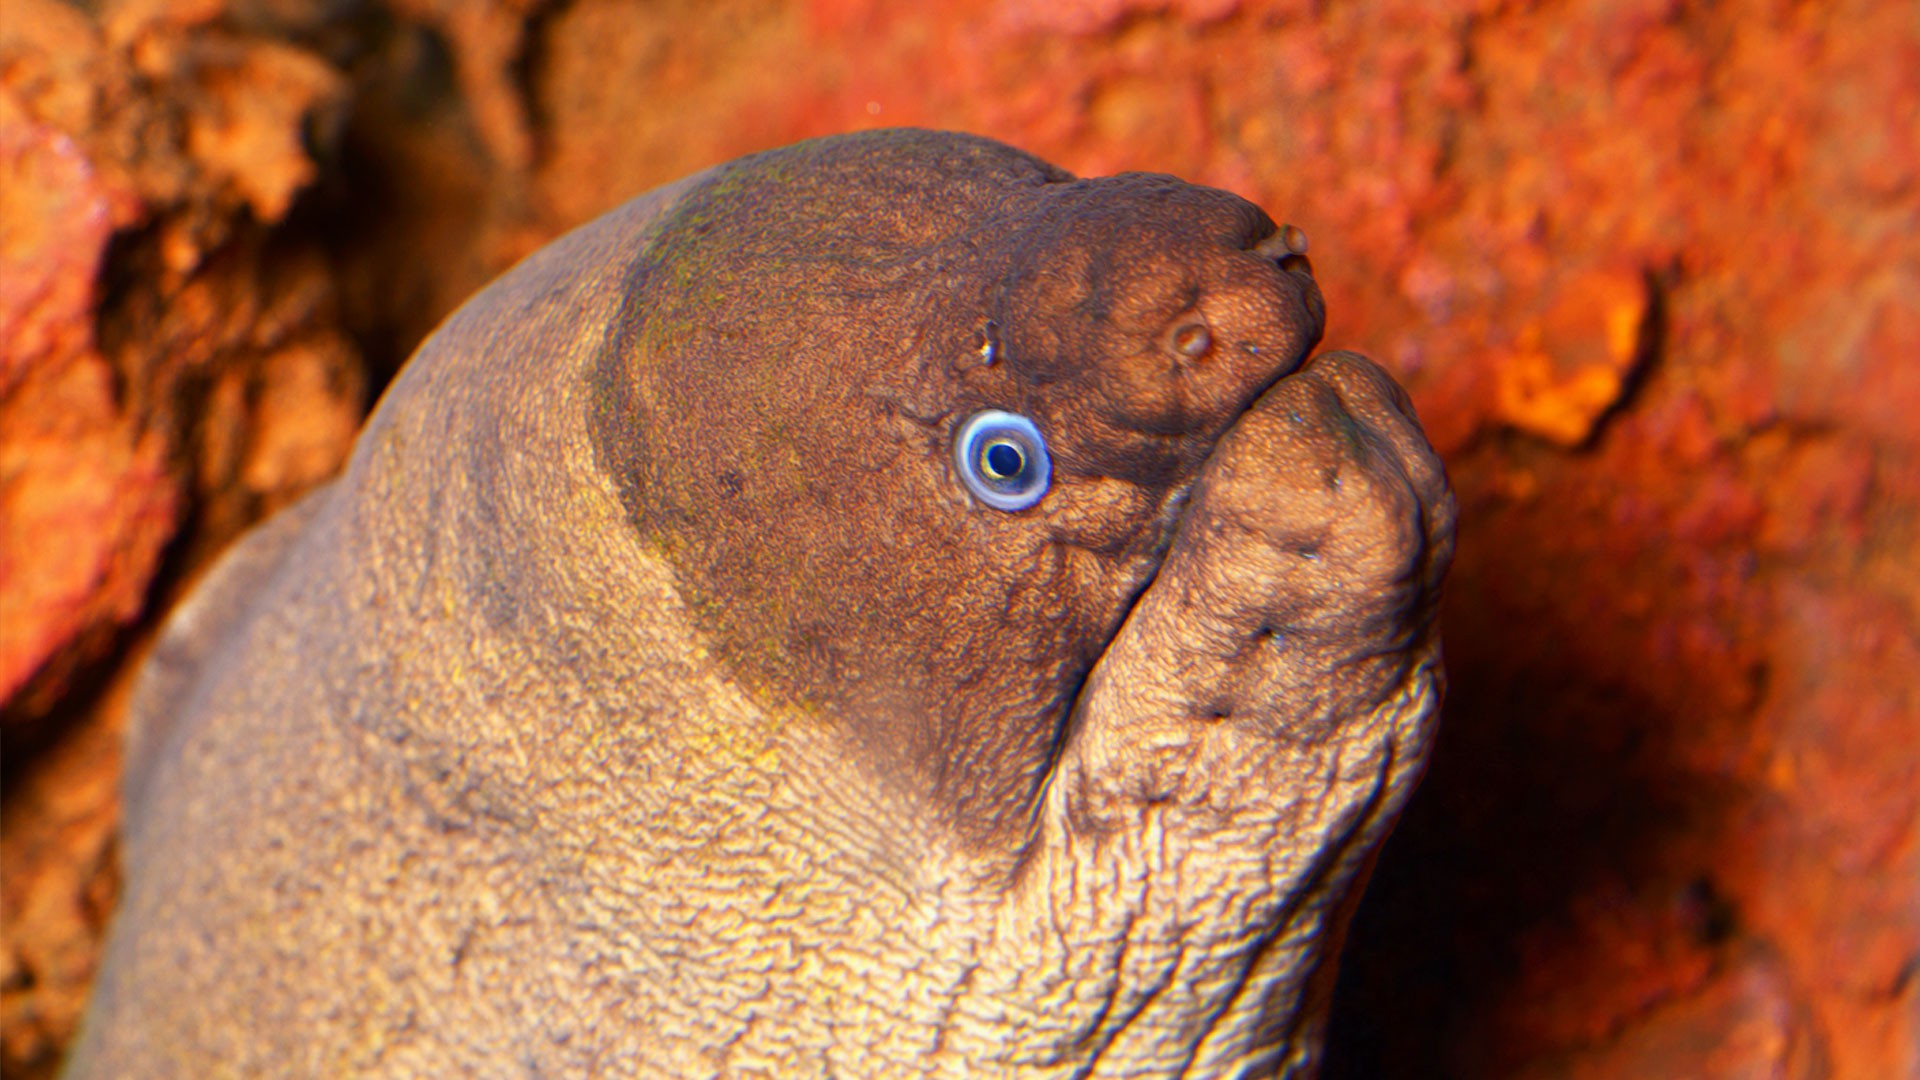 Brown moray eel